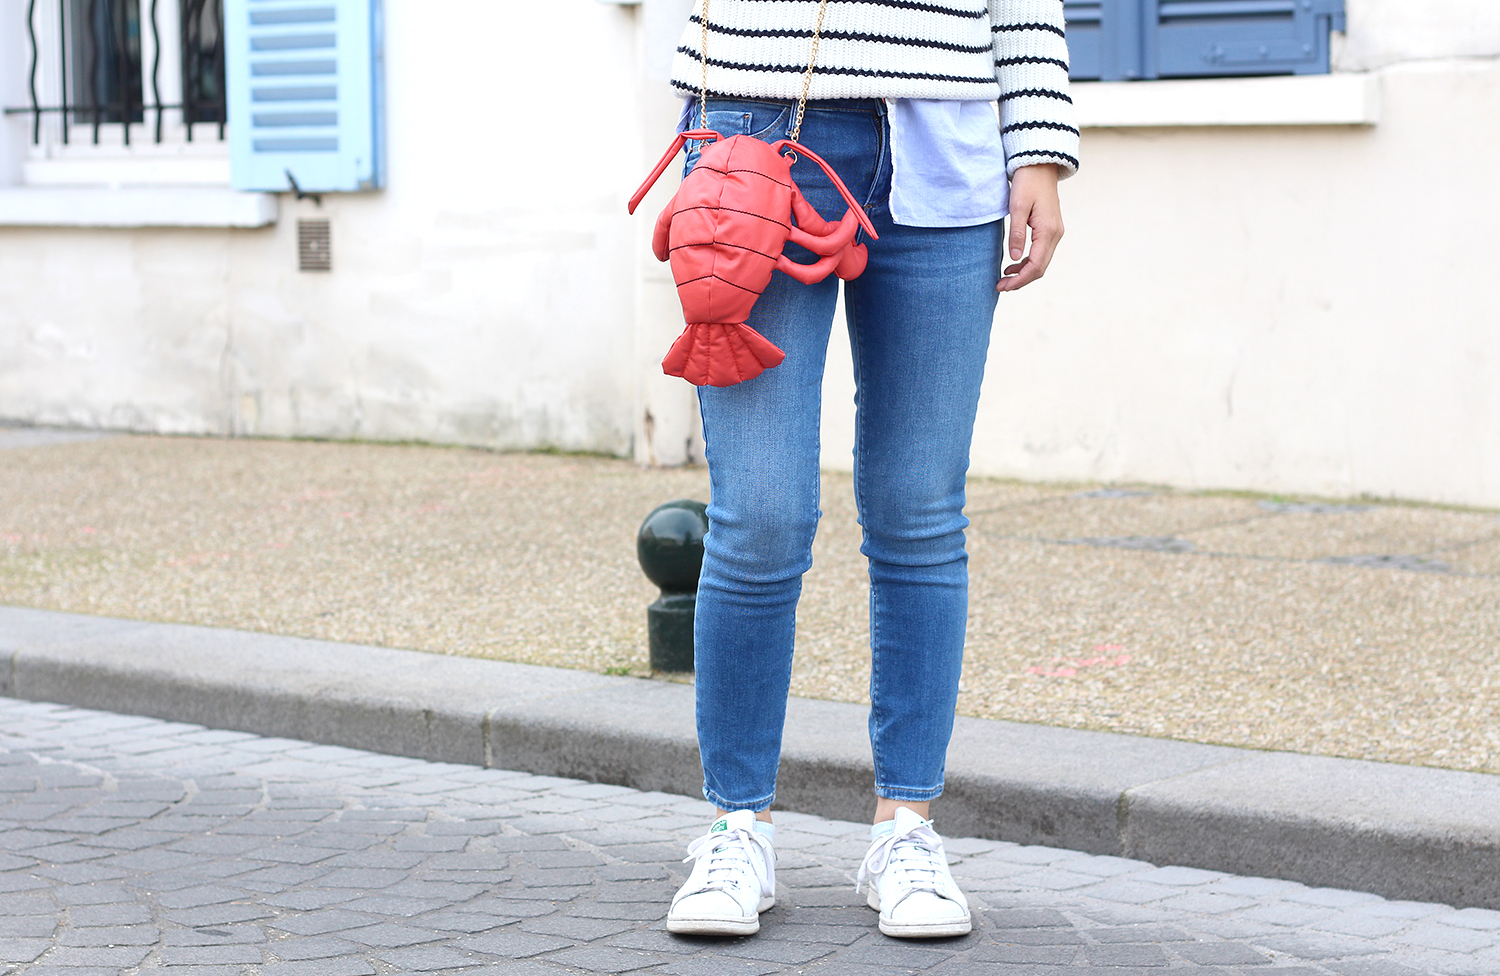 Petite and So What - Sac Larry le homard